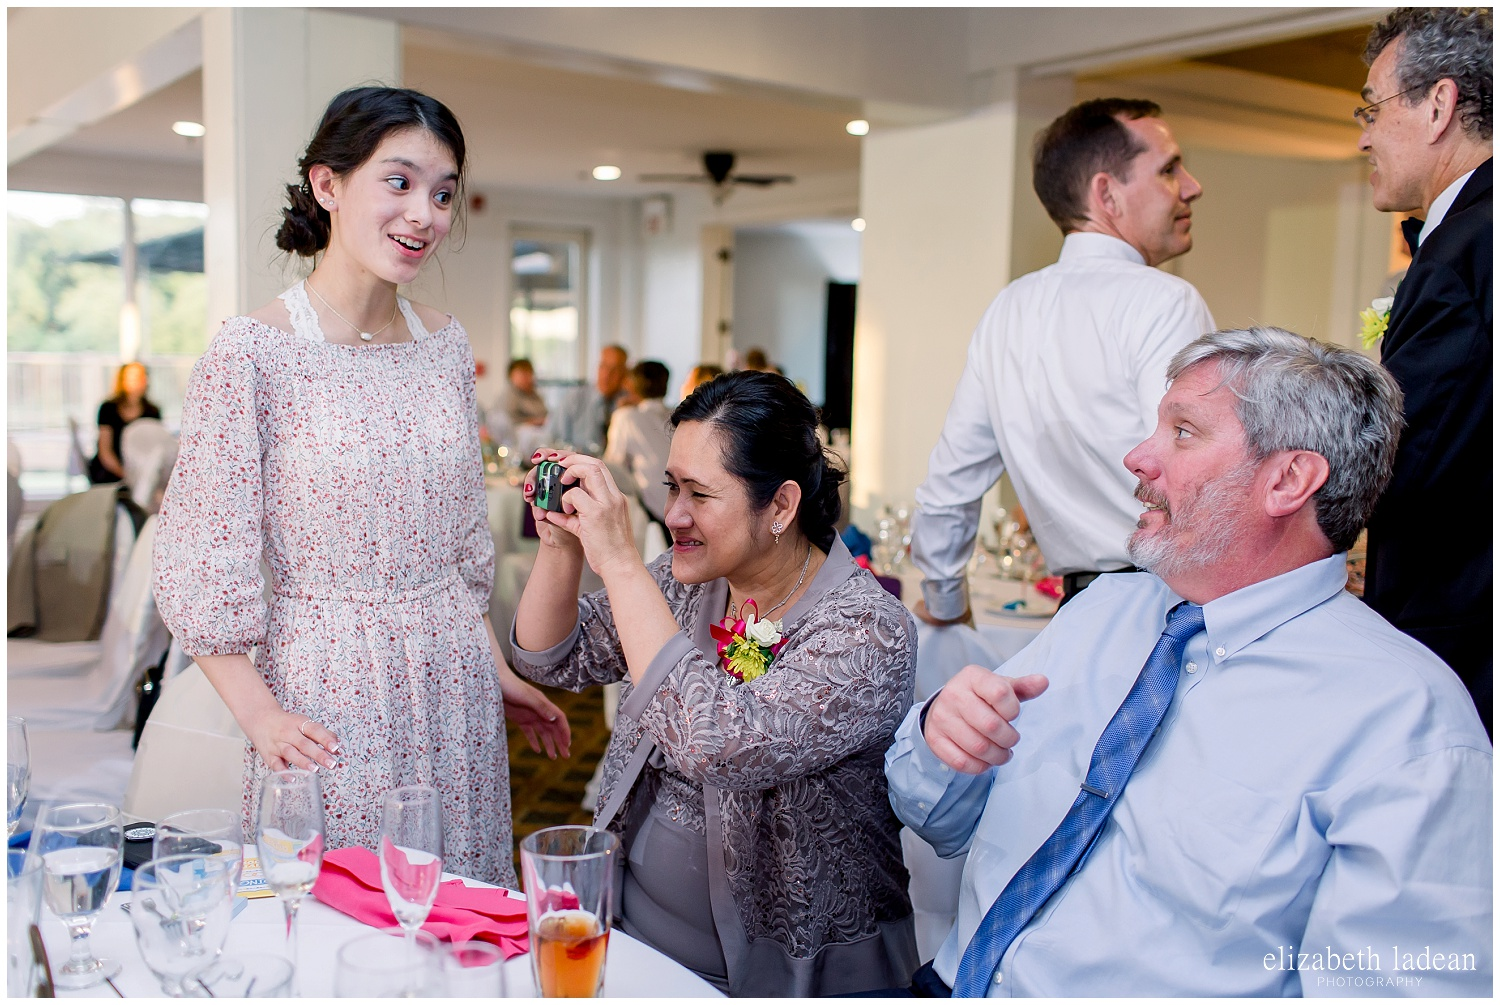 -behind-the-scenes-of-a-wedding-photographer-2018-elizabeth-ladean-photography-photo_3452.jpg